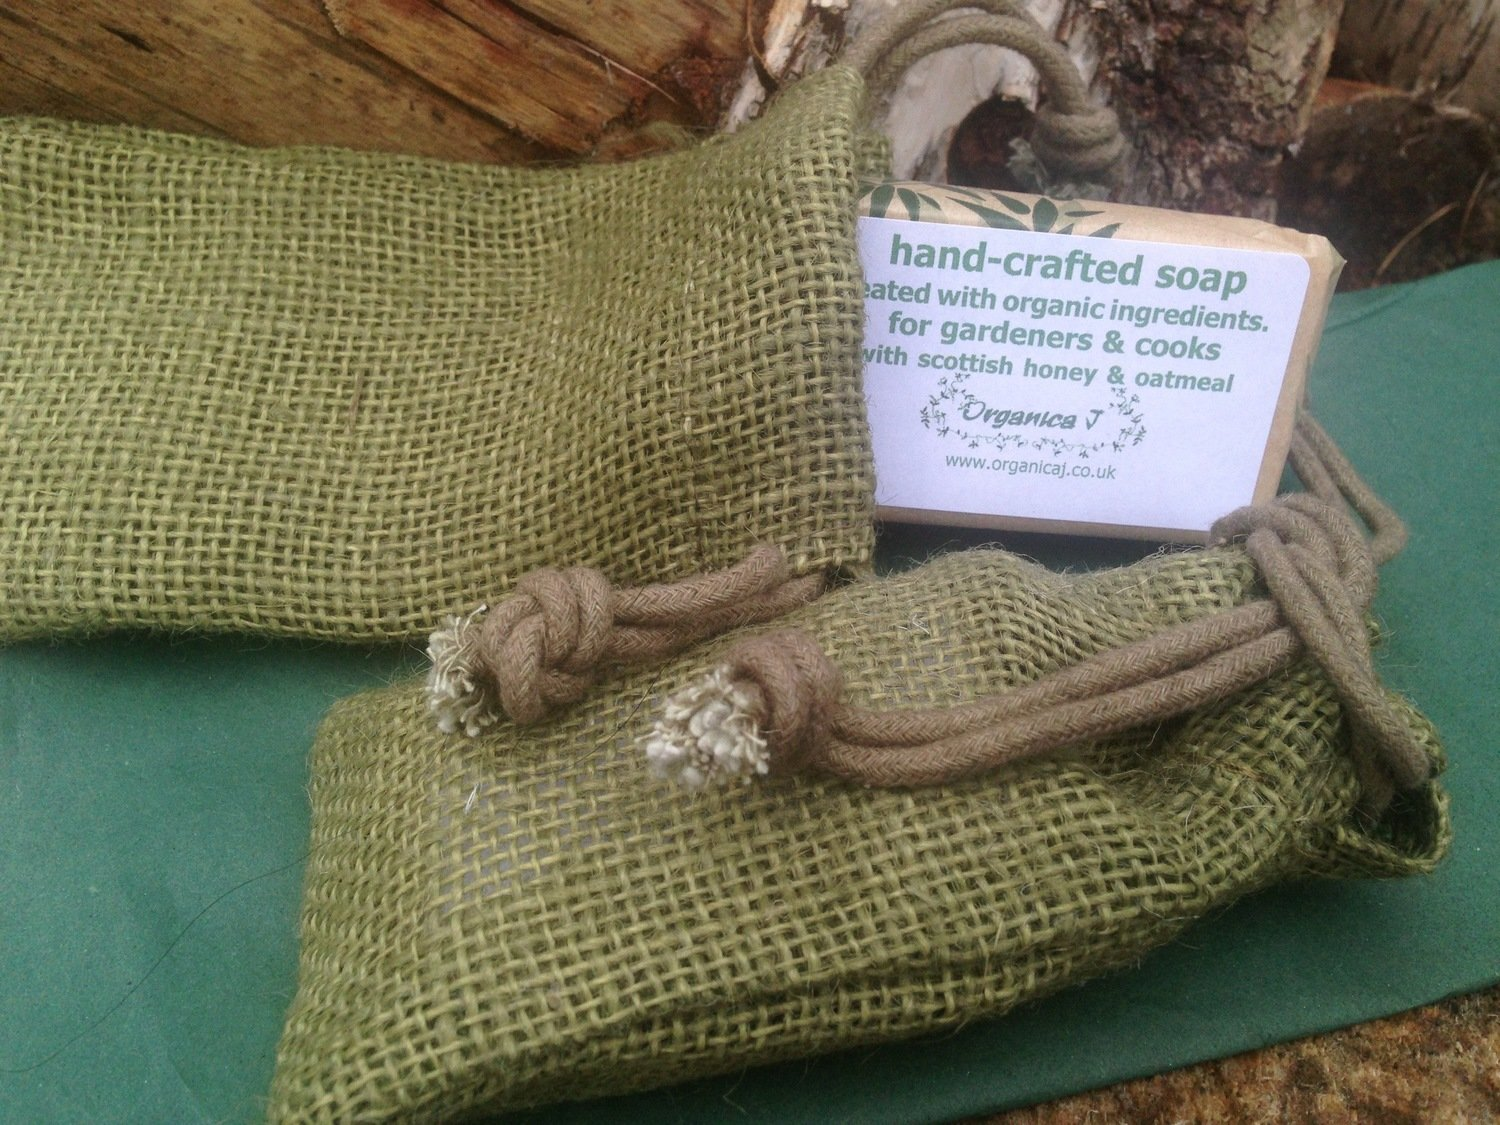 Organic Soap in Natural Green Jute Gift Bag